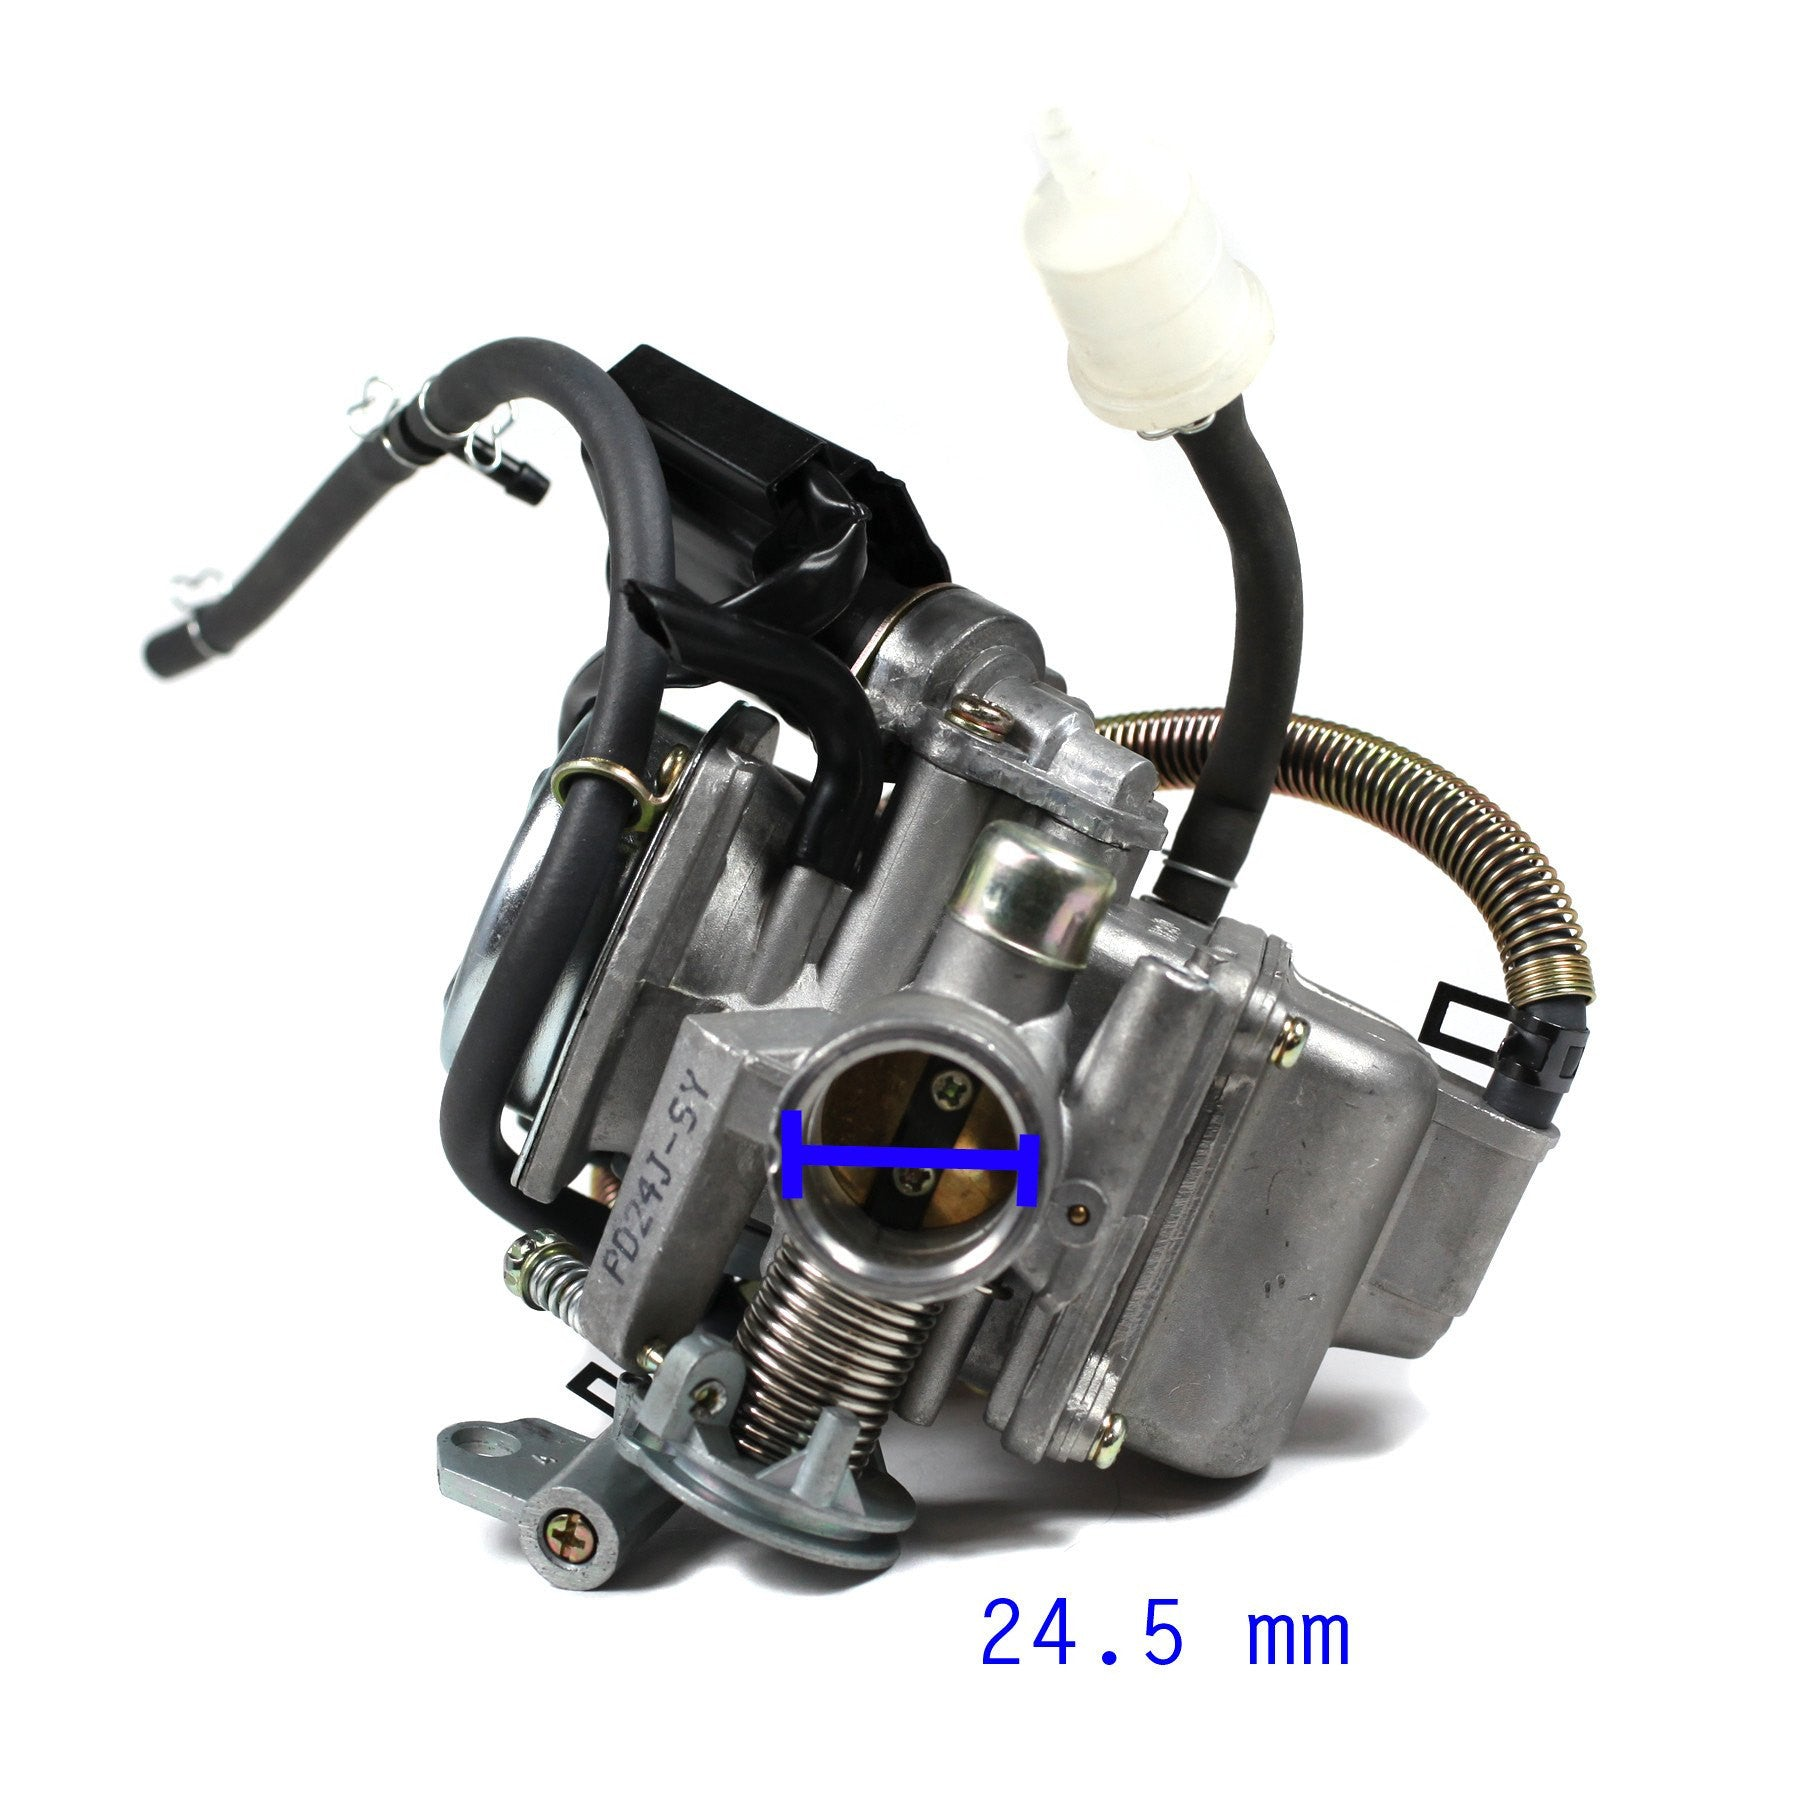 Carburetor PD24J - 24mm with Spring Drain Line - GY6 125cc